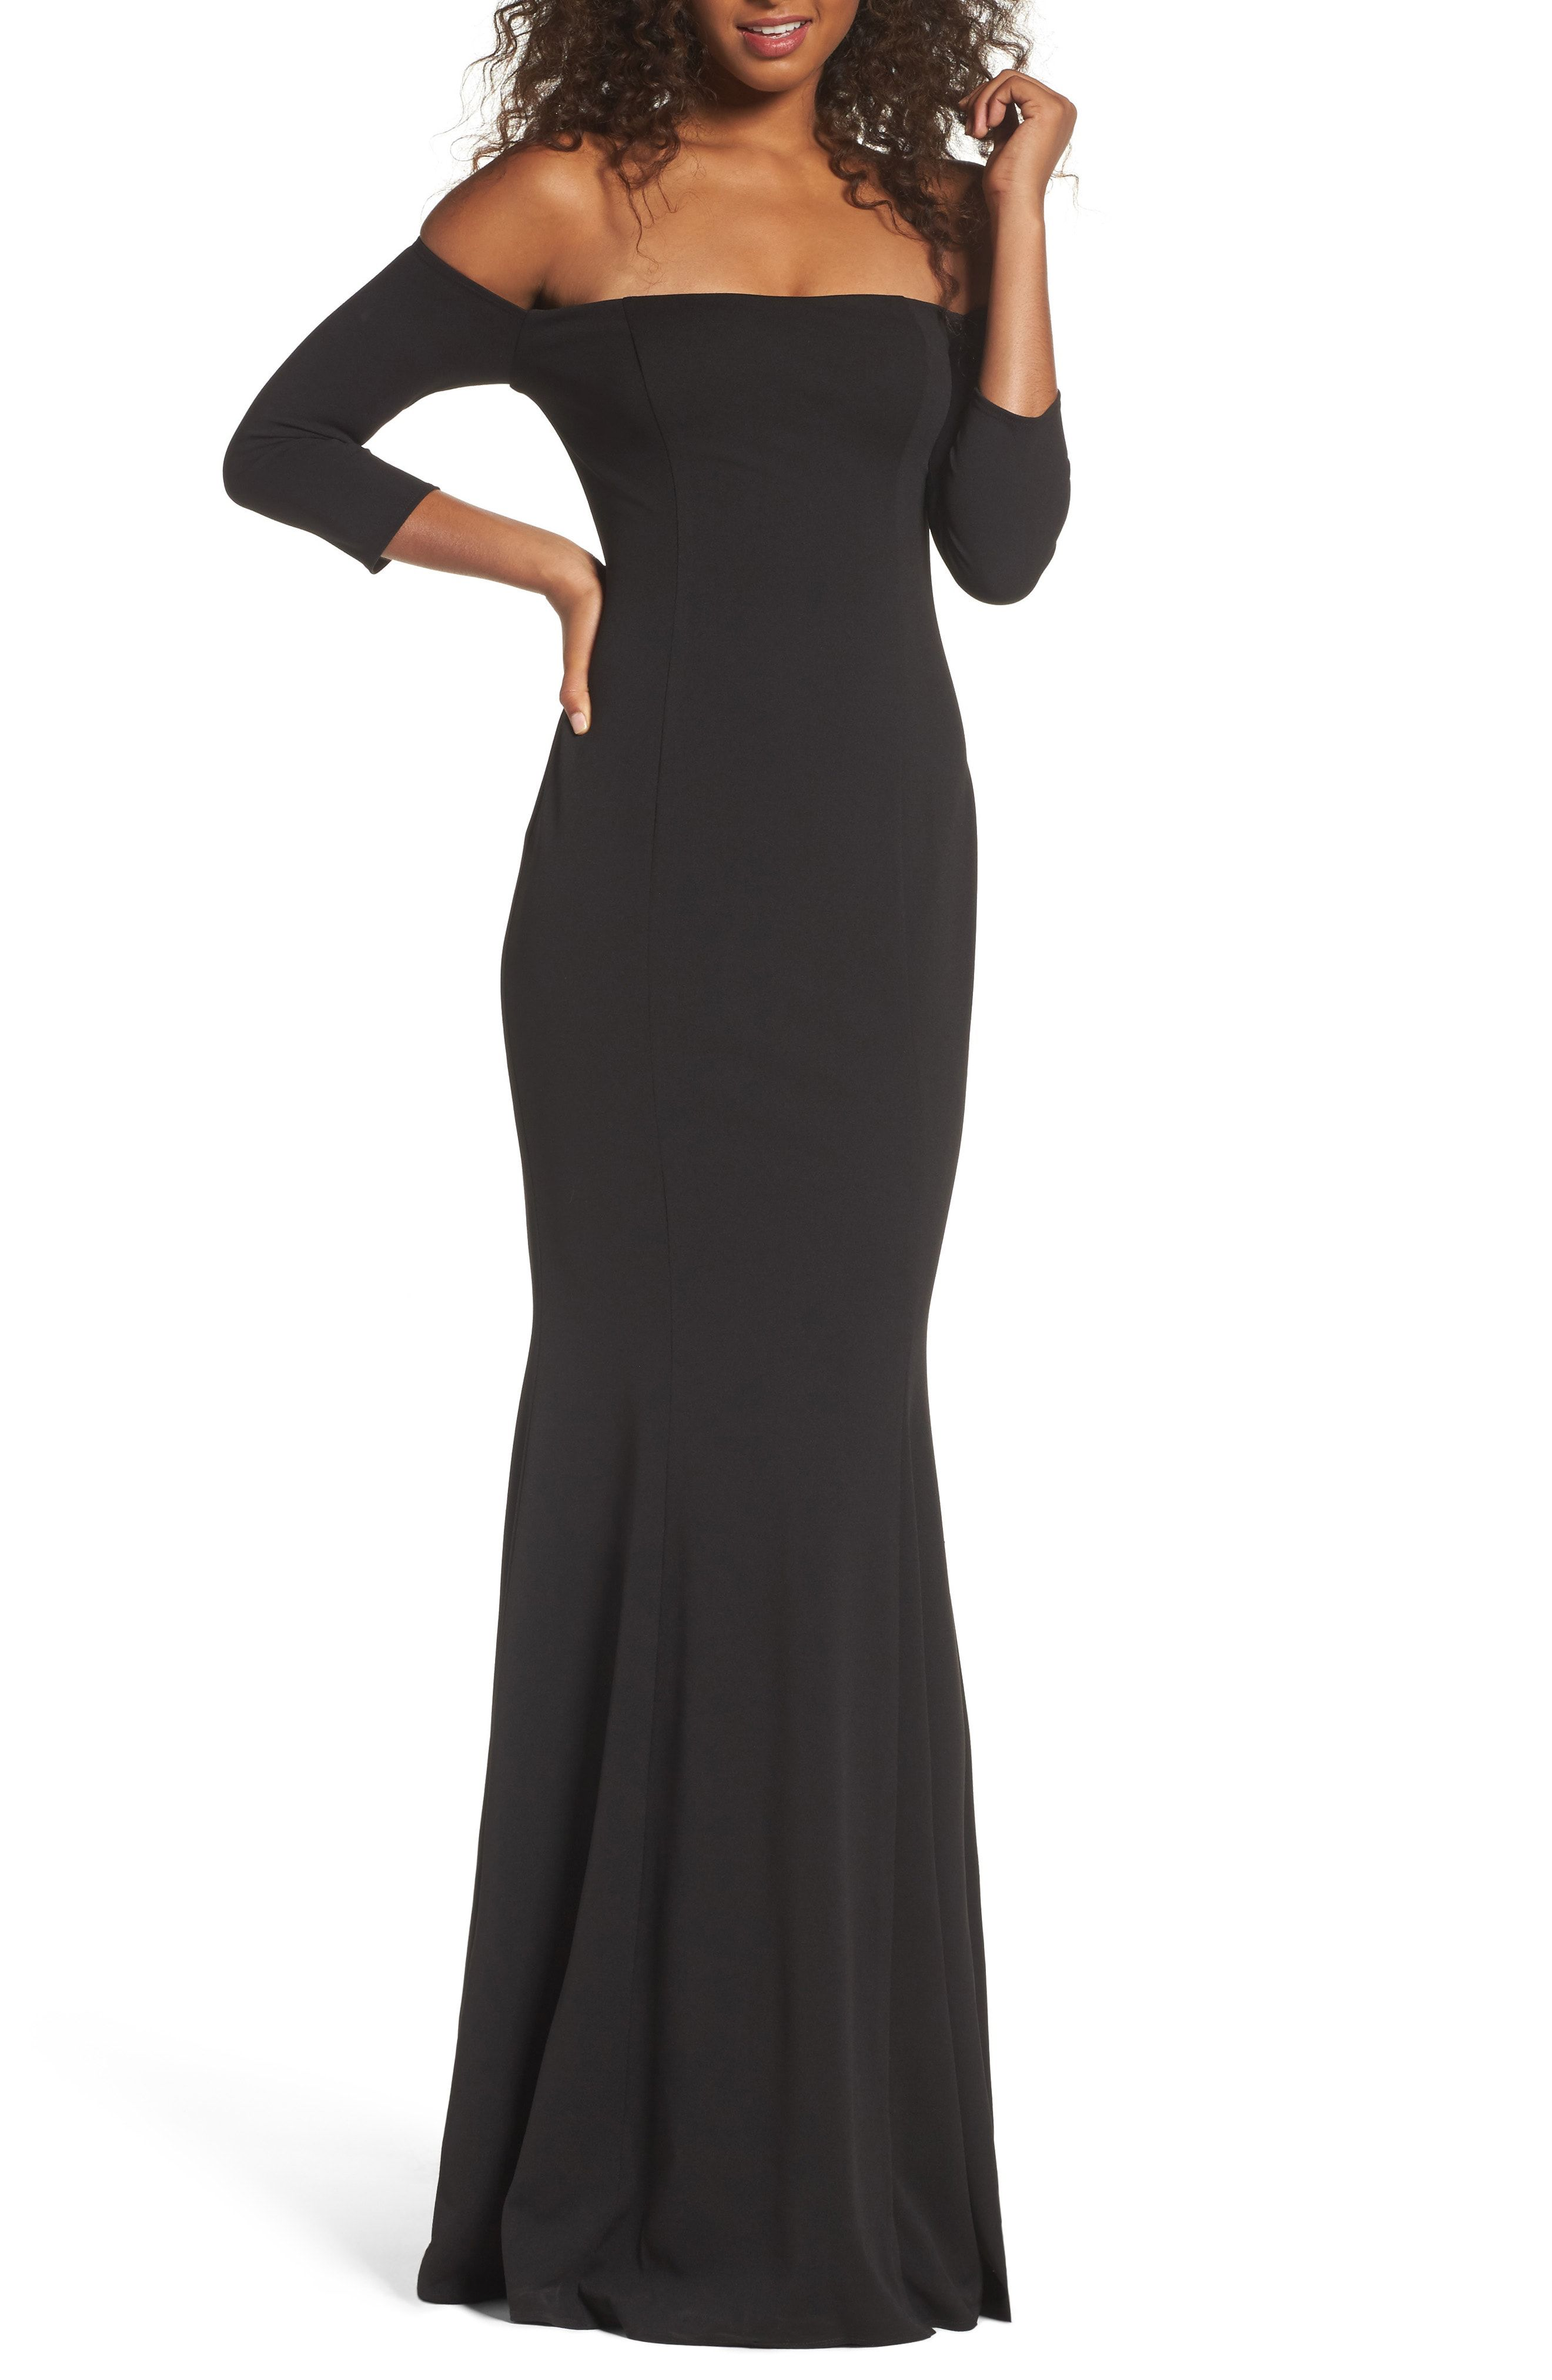 Black lace dress 3/4 sleeve may 2019 Katie May Brentwood ThreeQuarter Sleeve Off the Shoulder Gown